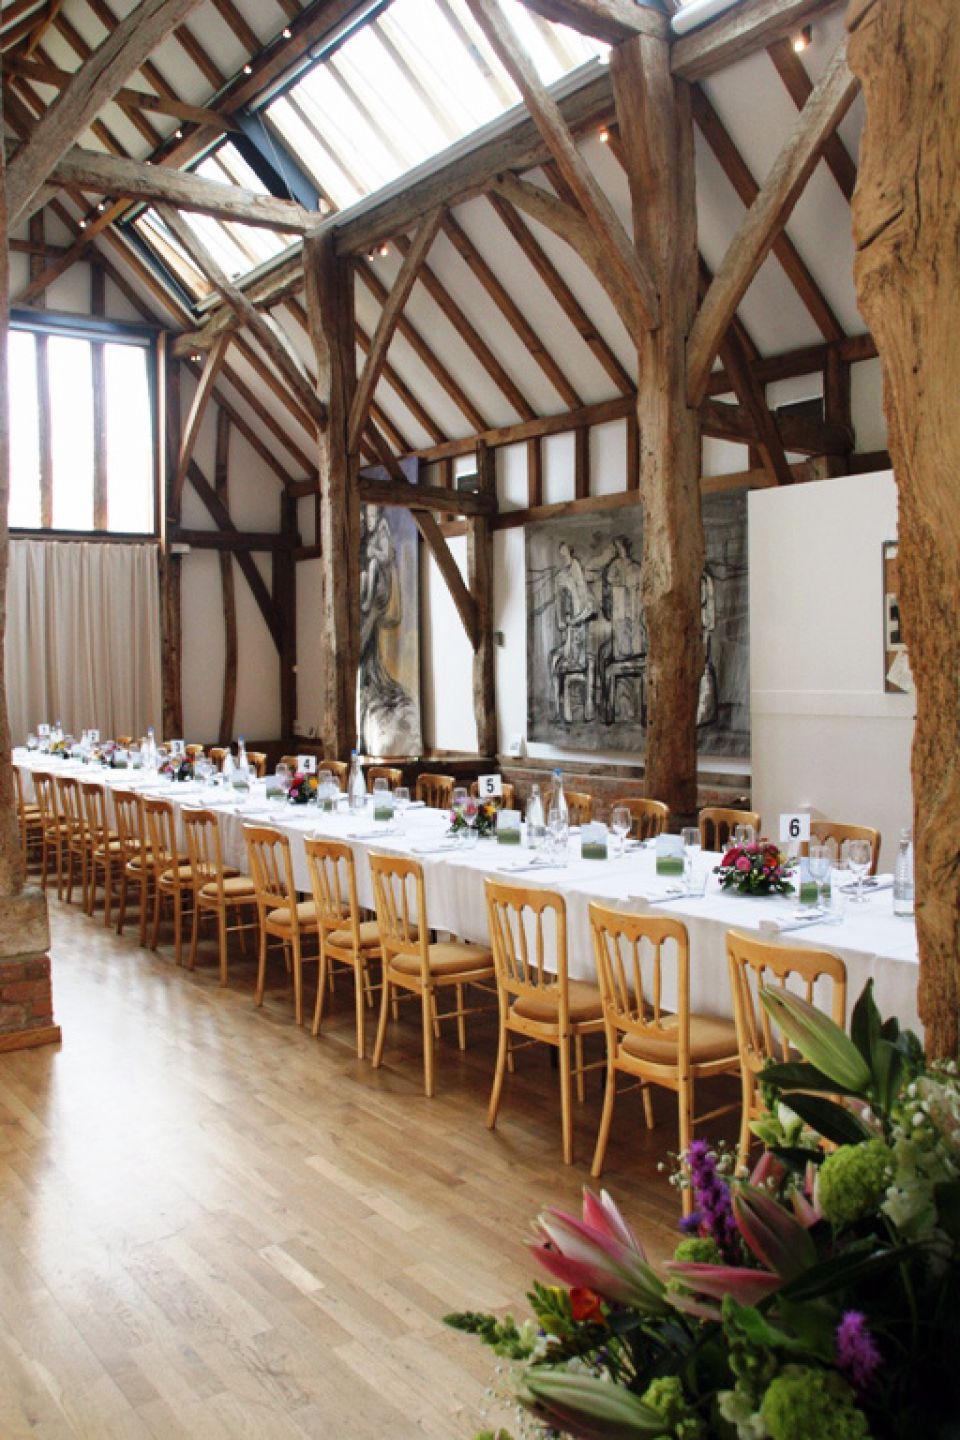 Aisled Barn laid with long table for a birthday party